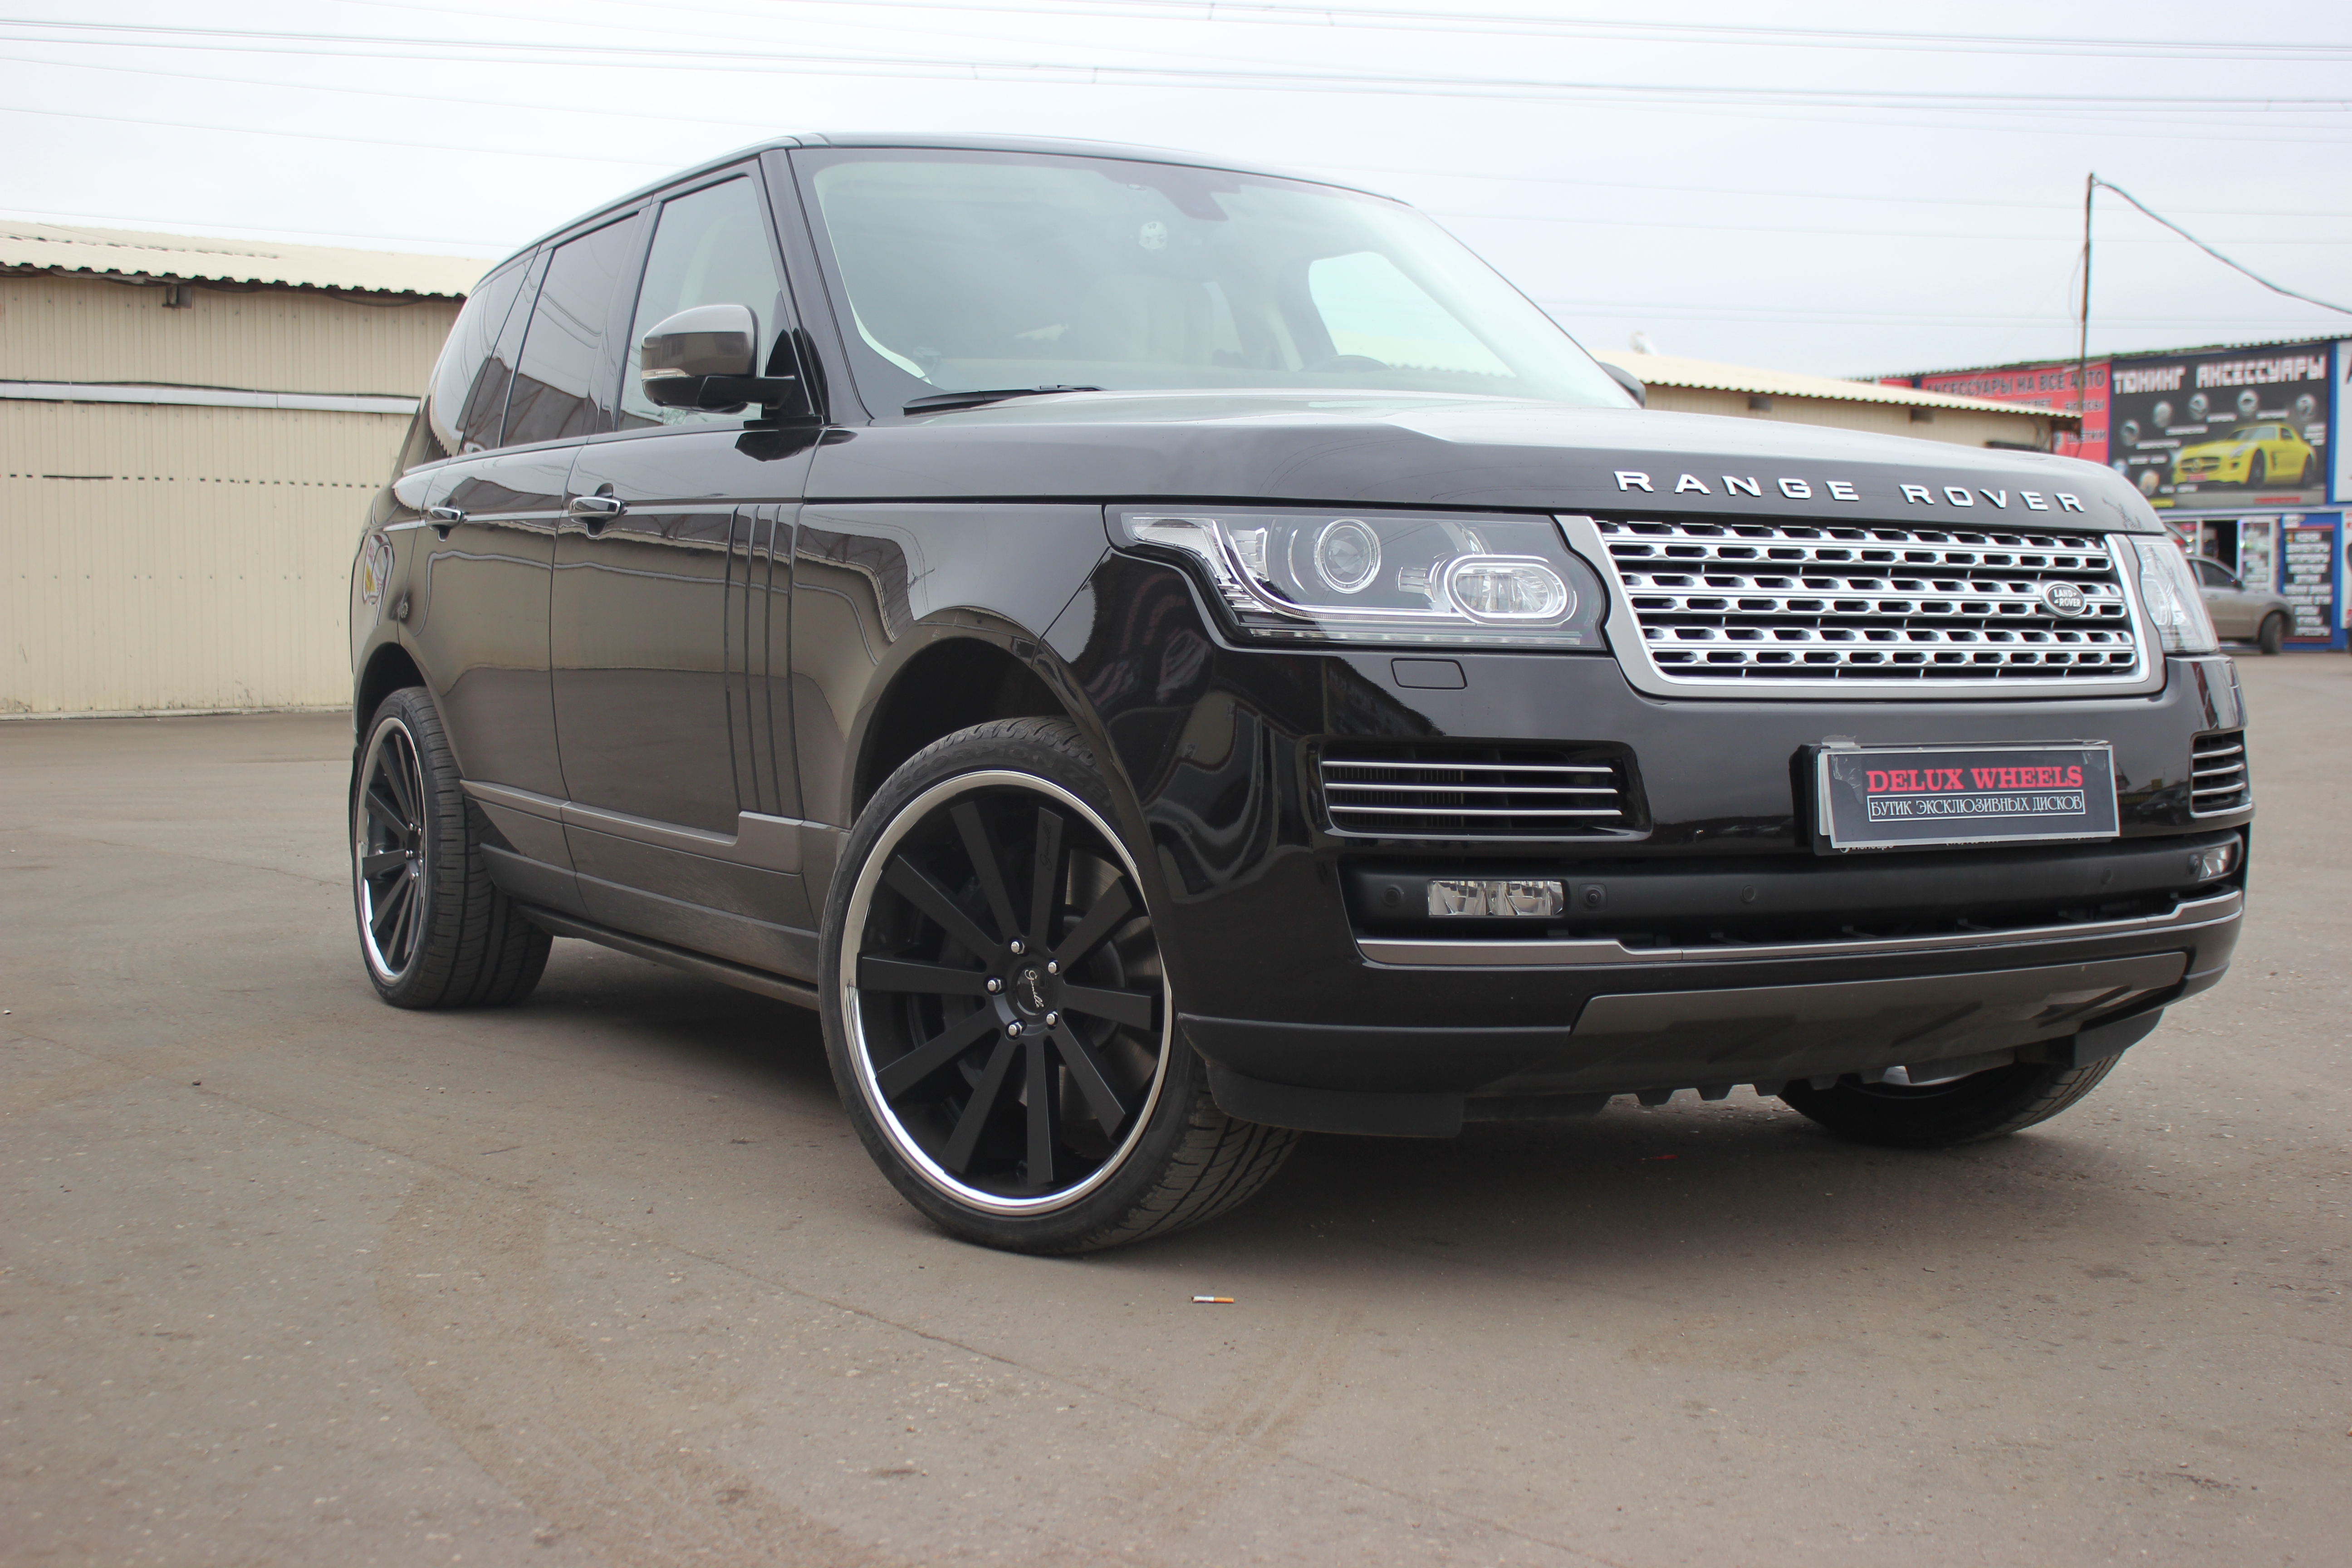 Gianelle Santo-2SS 22x10,5 on Range Rover Vogue 2013